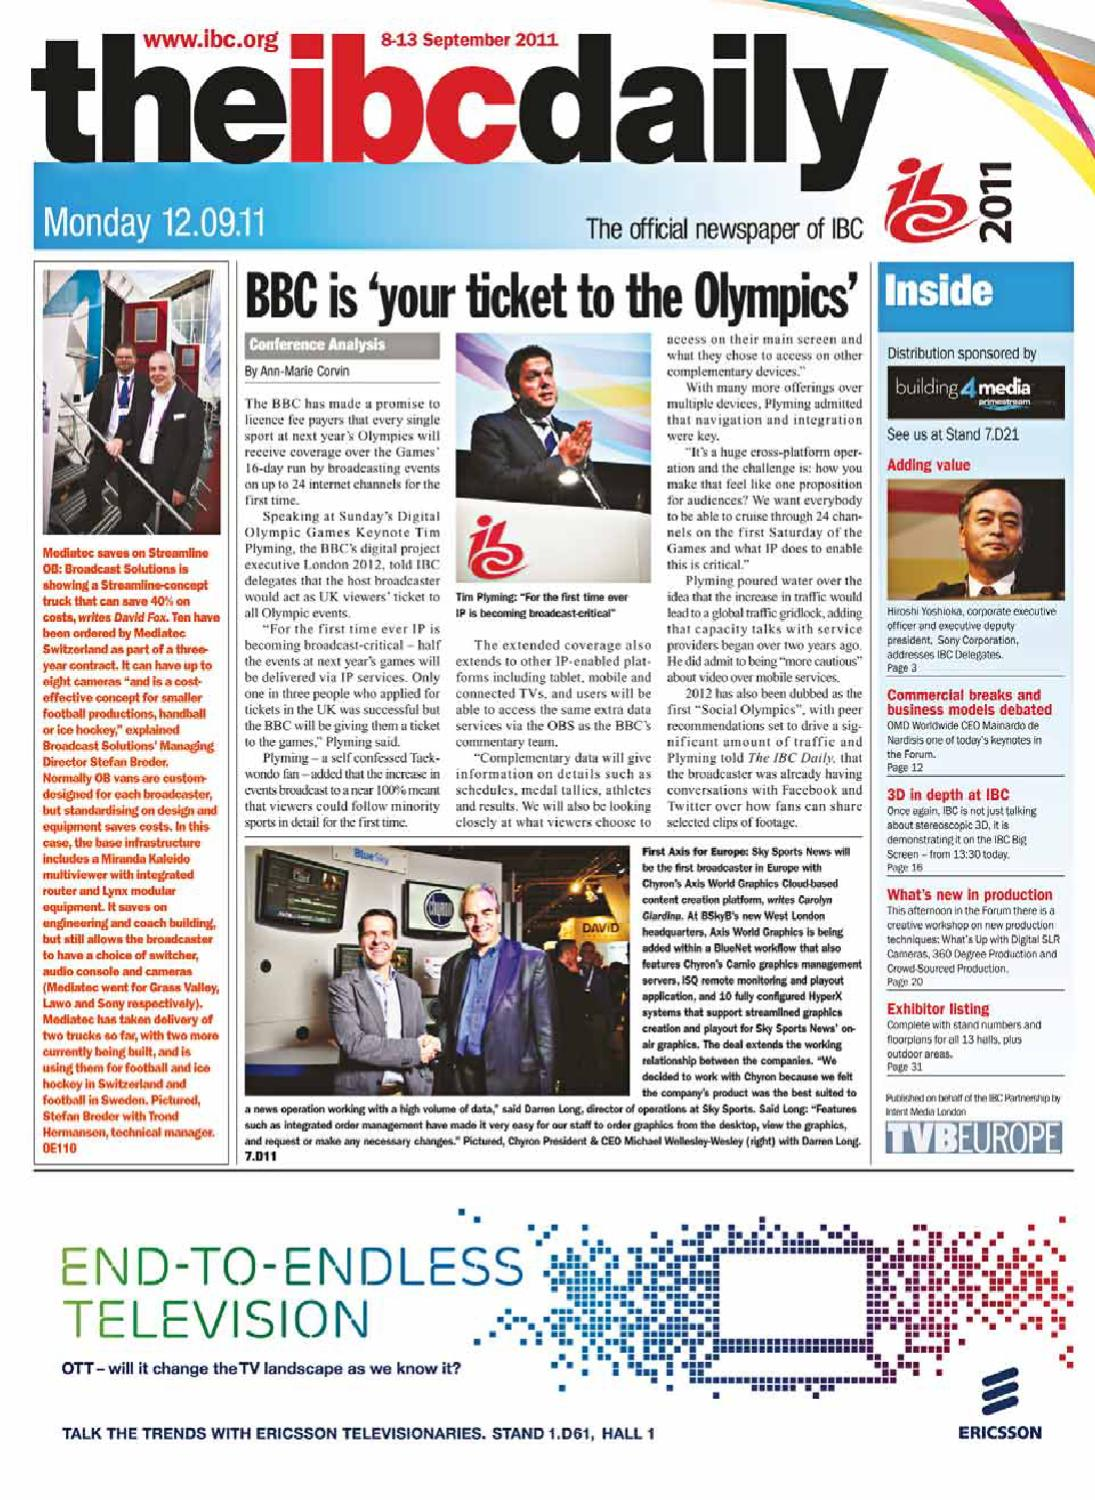 The IBC Daily 2011 – 12/9/11 Issue by Intent Media (now